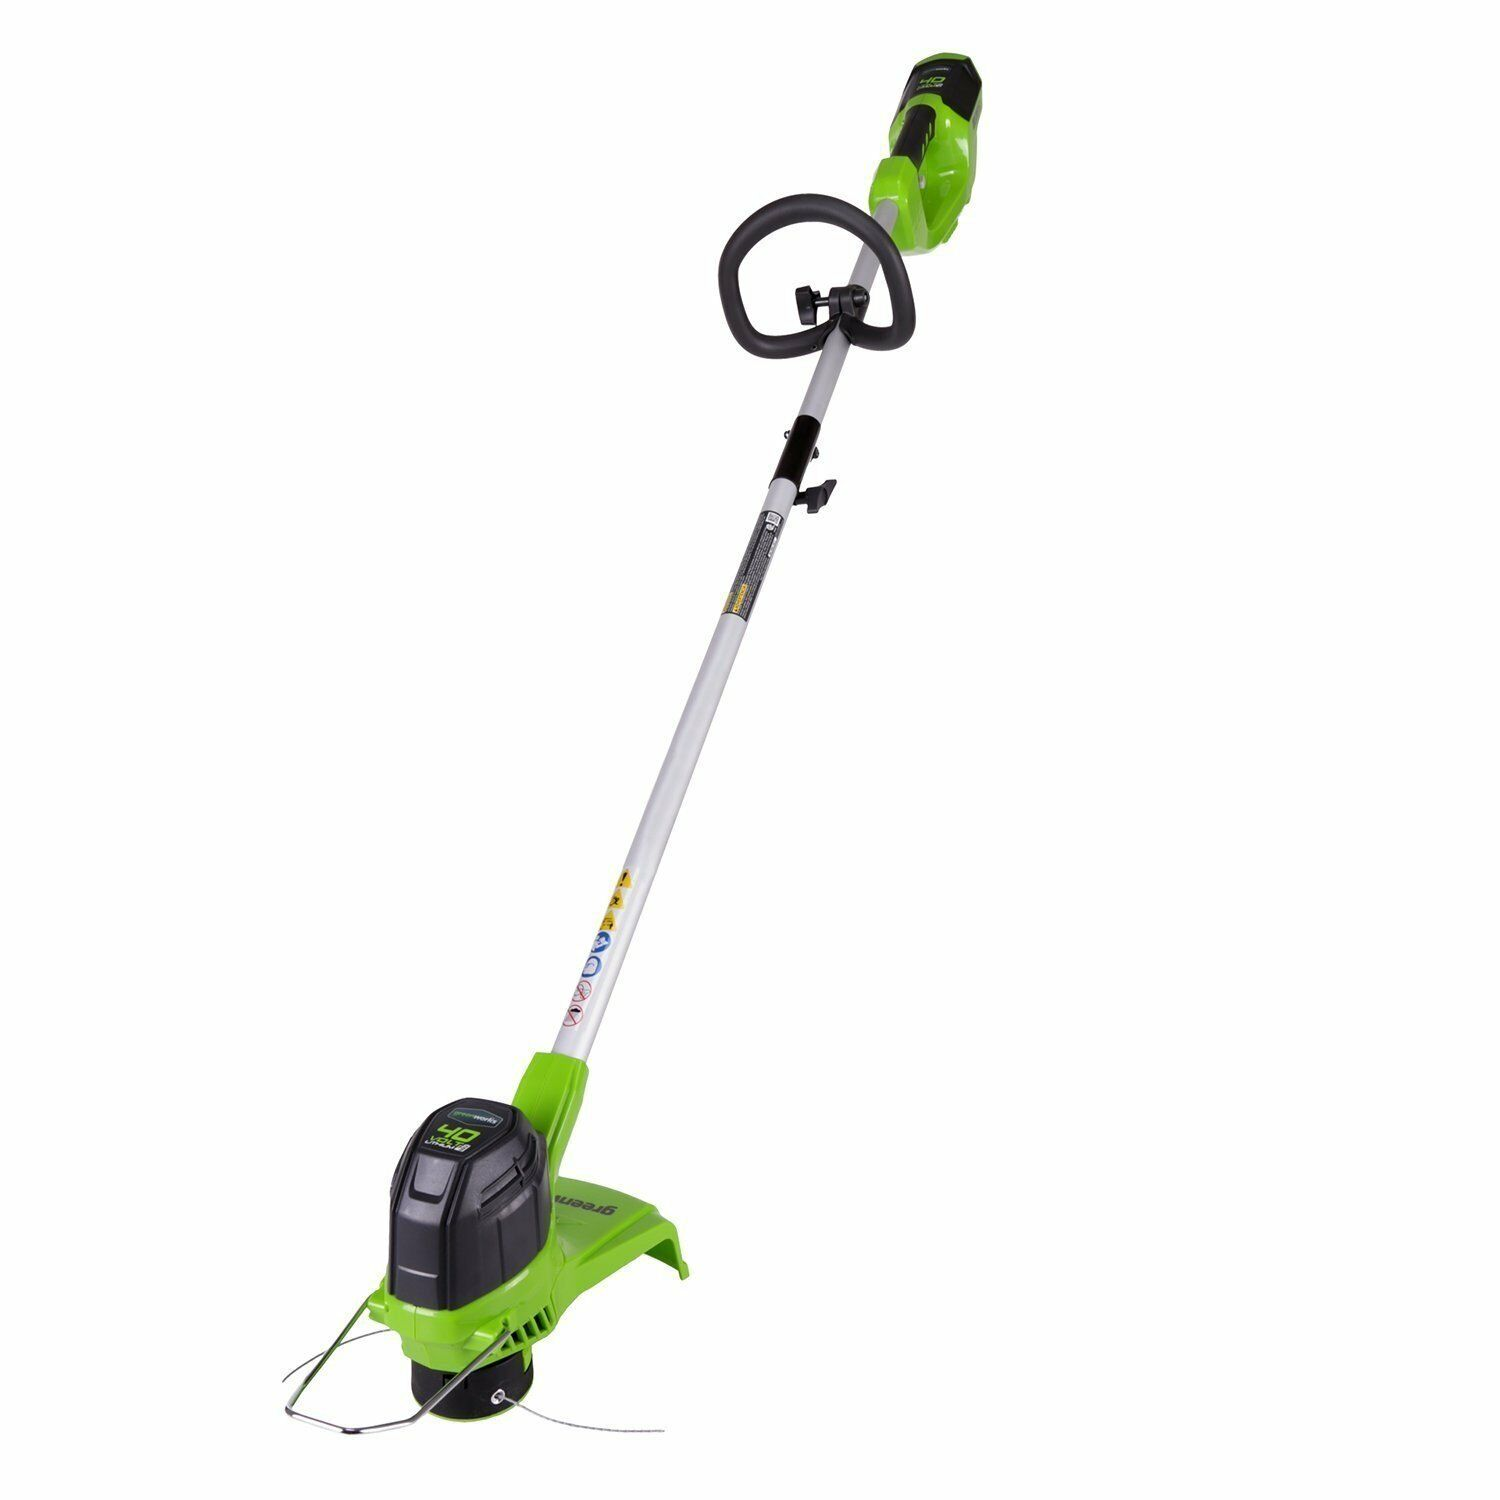 Greenworks 12-Inch 40V Cordless String Trimmer, Battery Not